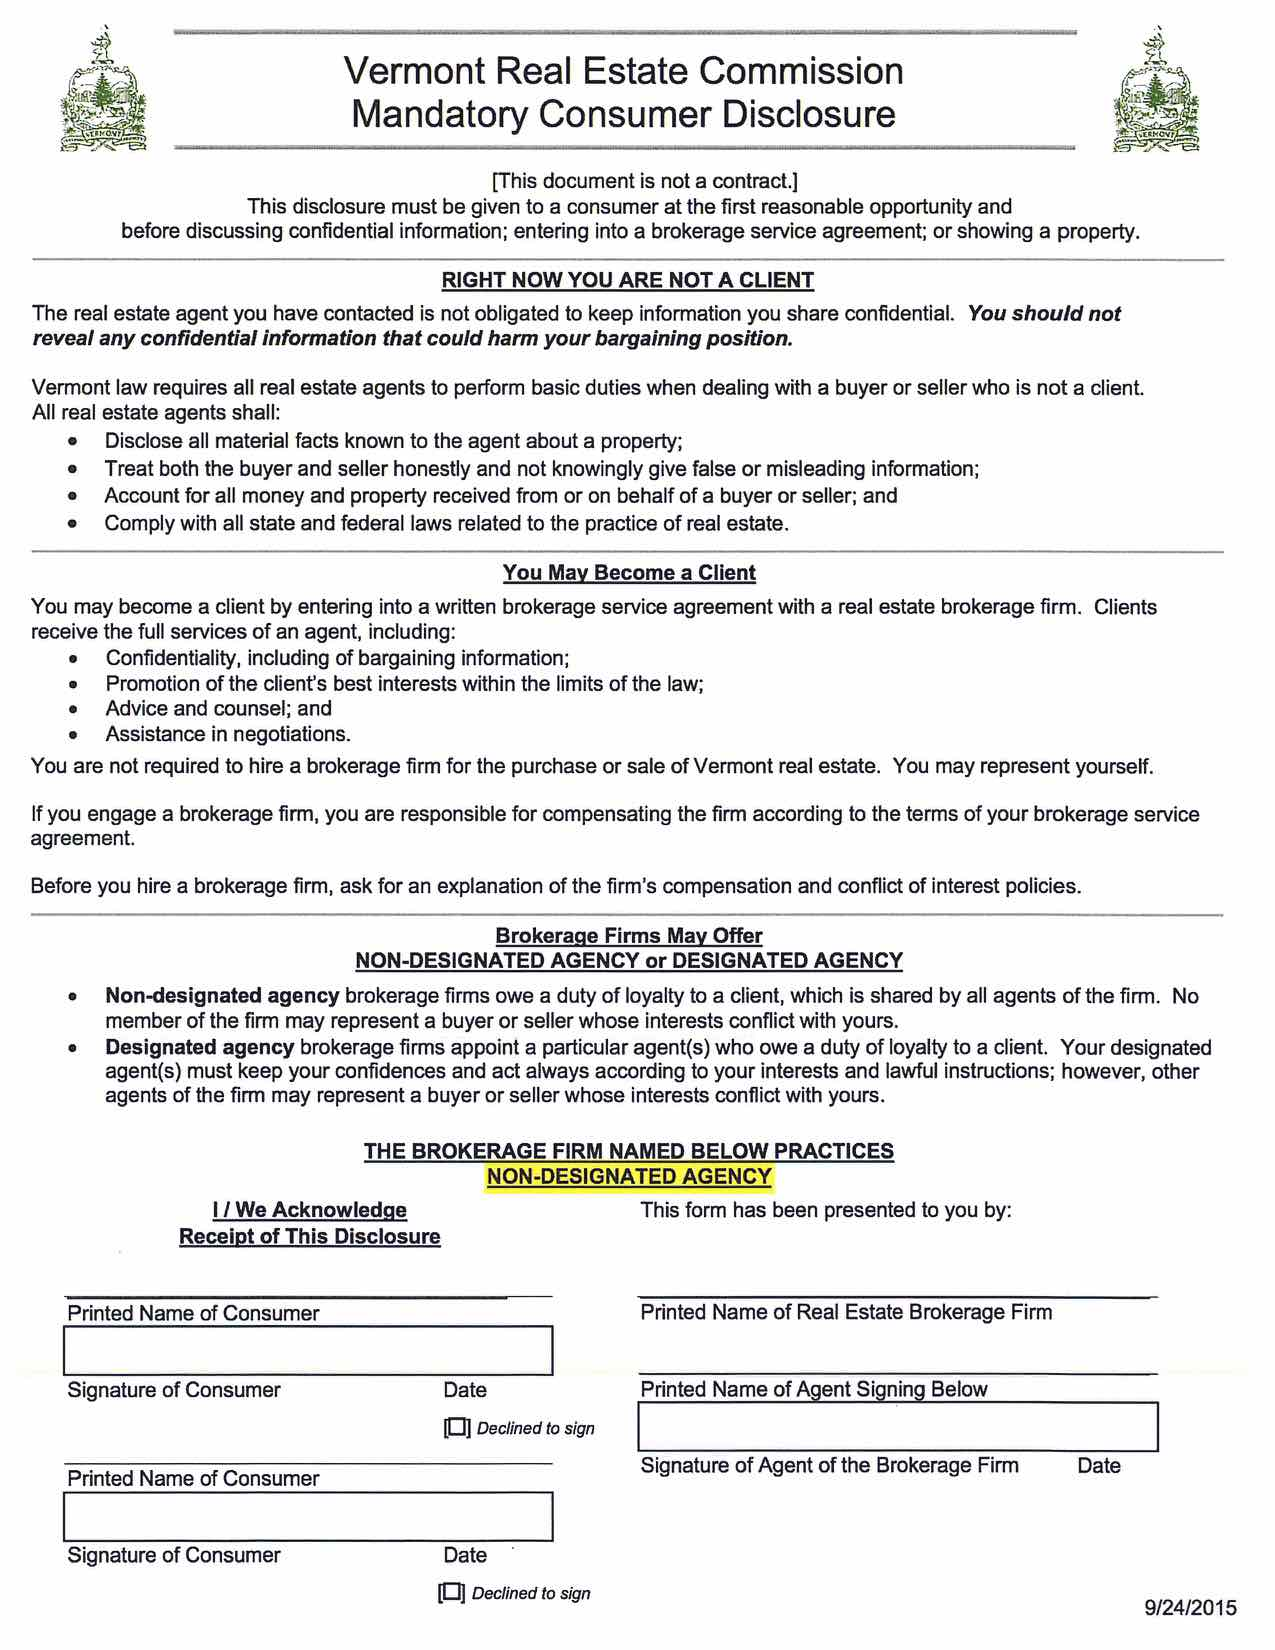 Consumer Disclosure Documents - Snyder Donegan Real Estate Group